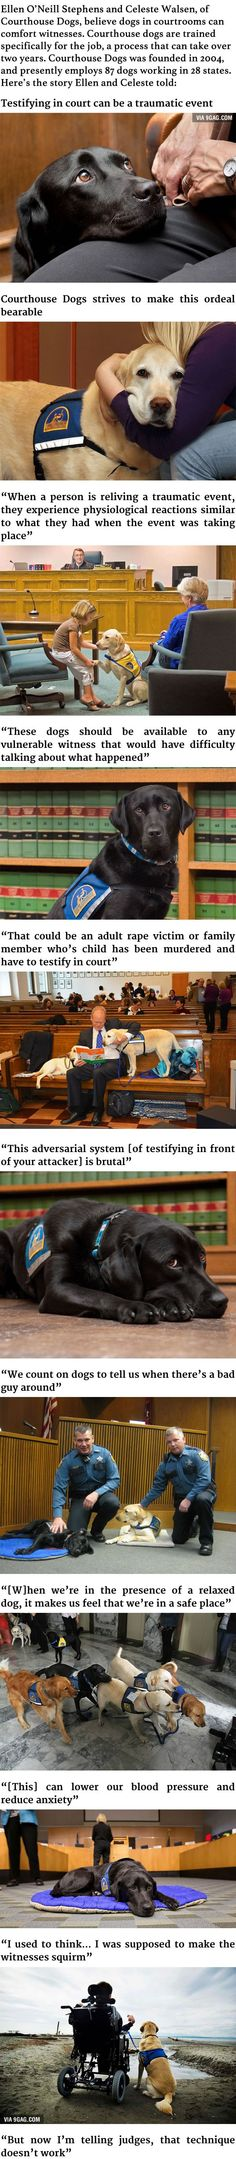 These Courthouse Dogs Are Trained To Comfort Witnesses In Courtrooms - 9GAG